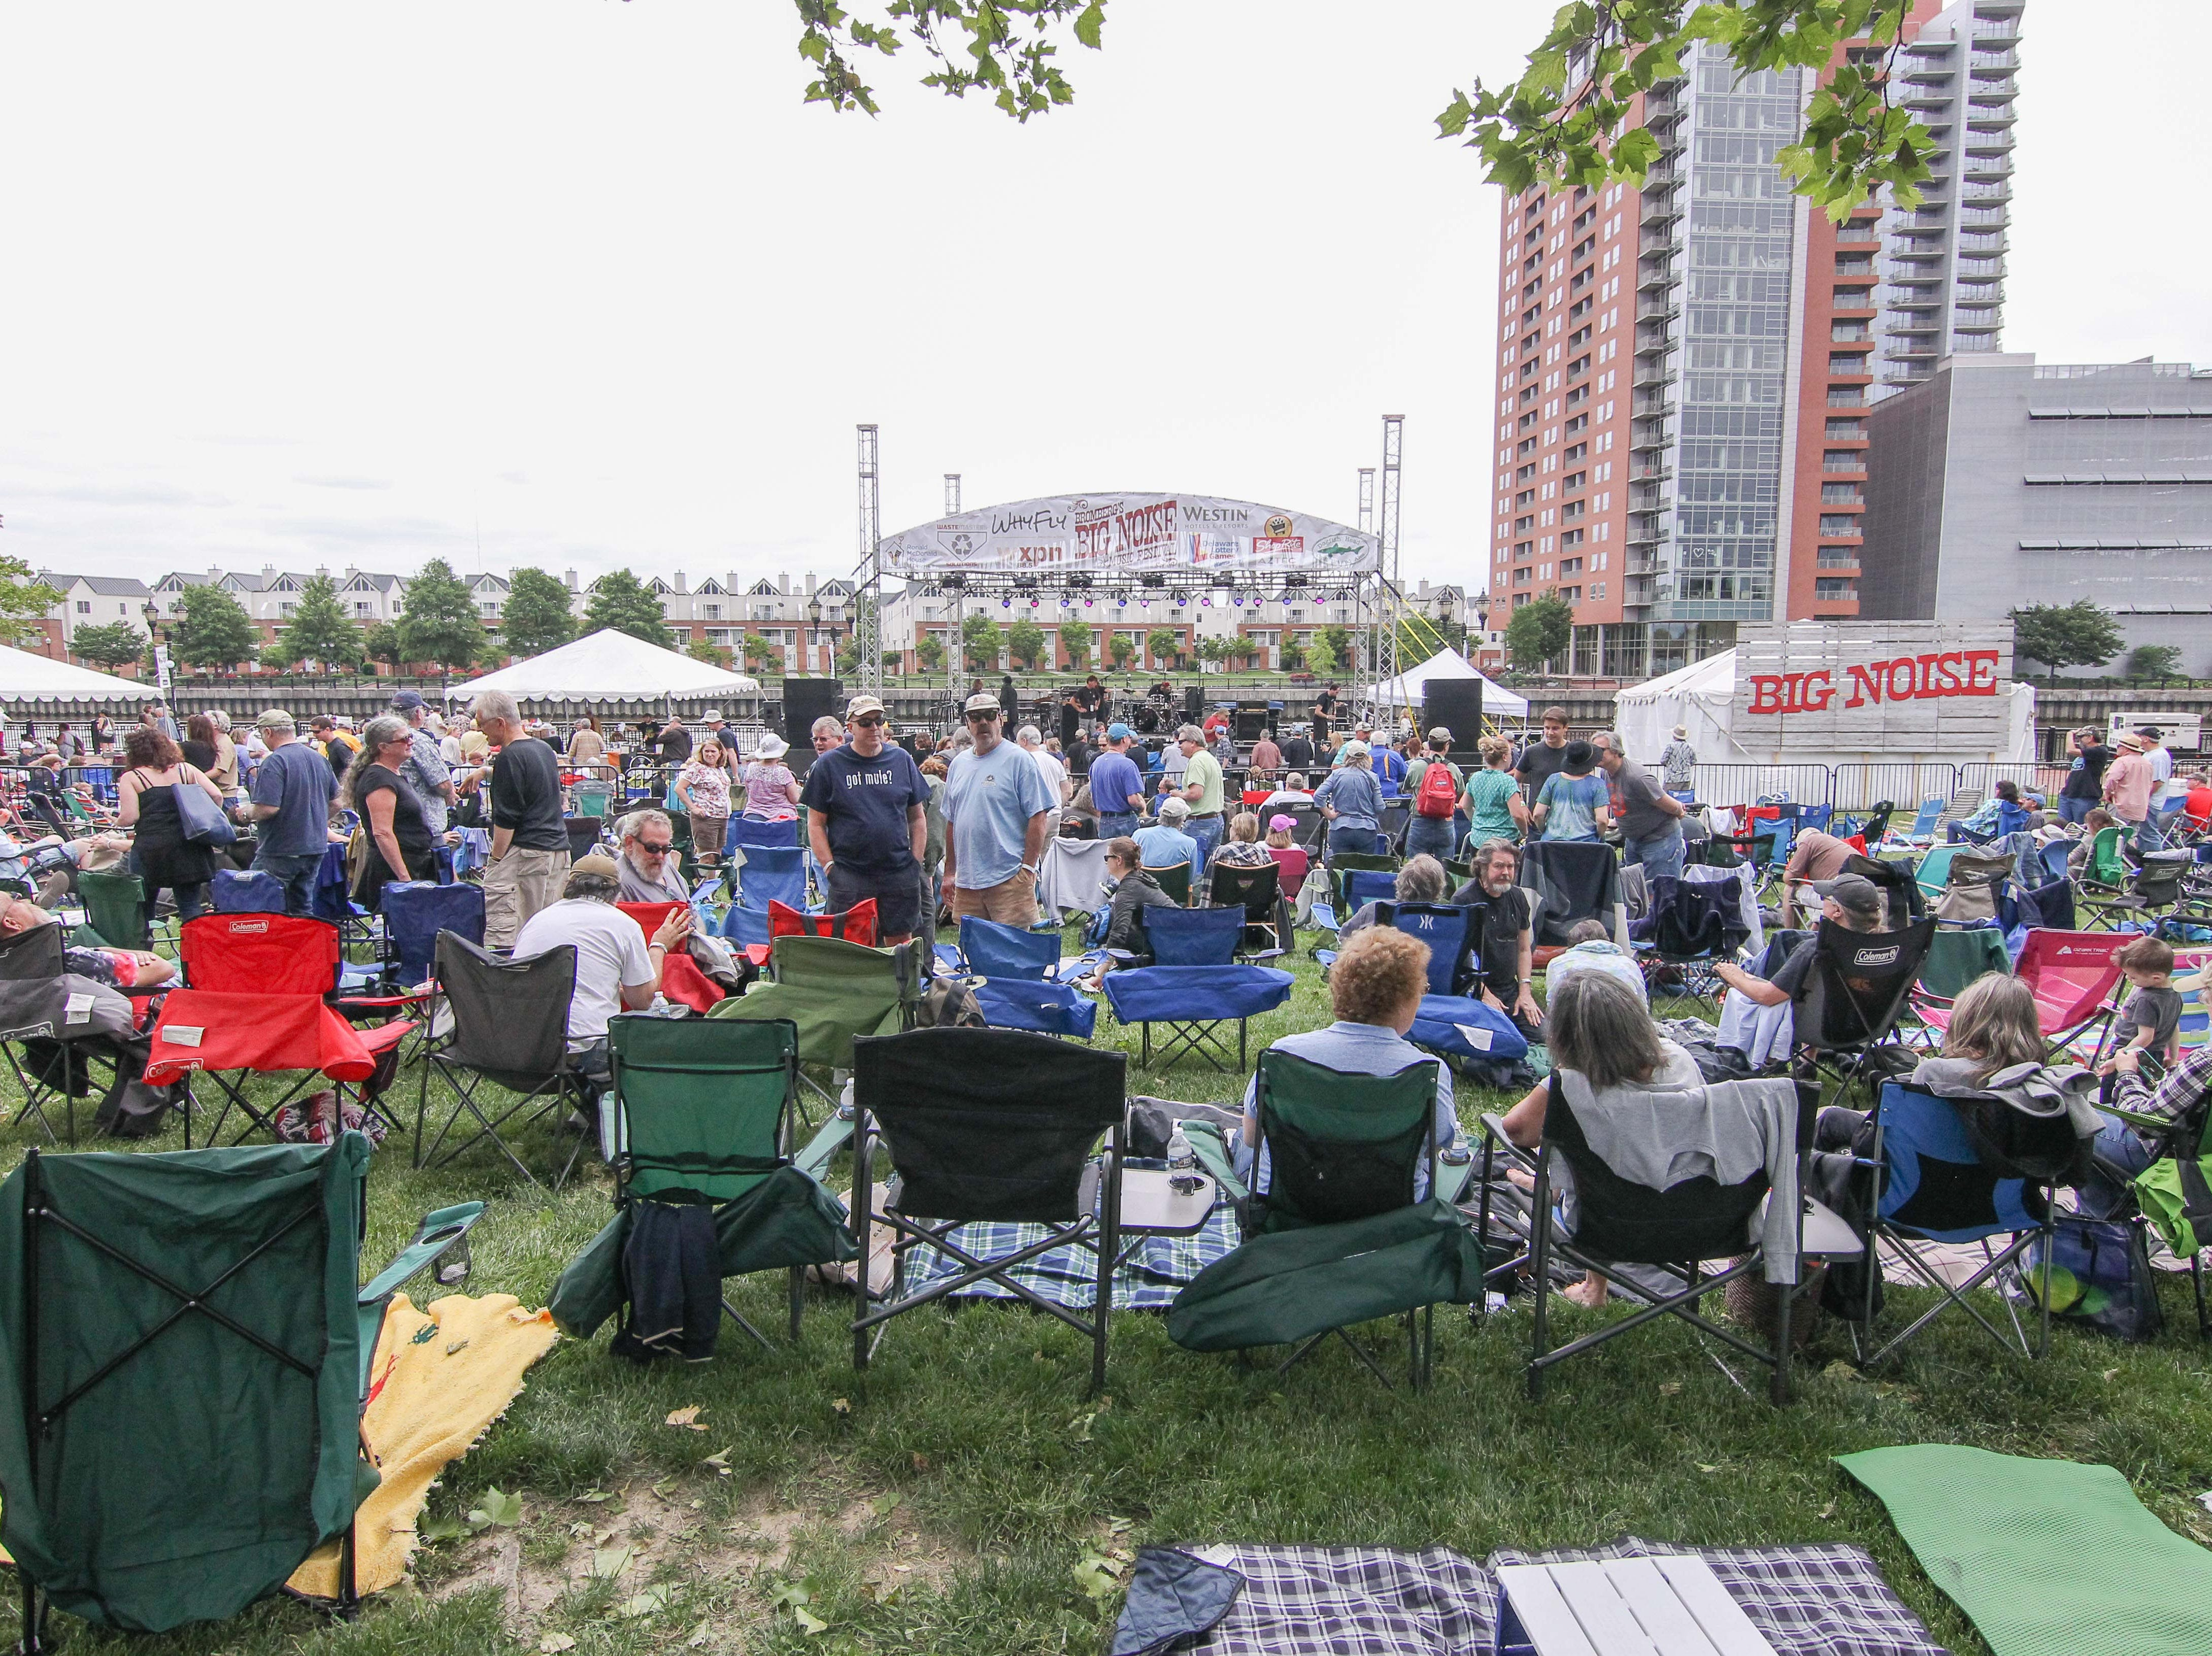 A crowd of 3,000 listens to Larry Campbell and Teresa Williams at Bromberg's Big Noise on Saturday, May 20, 2017, at Tubman Garrett Park in Wilmington.